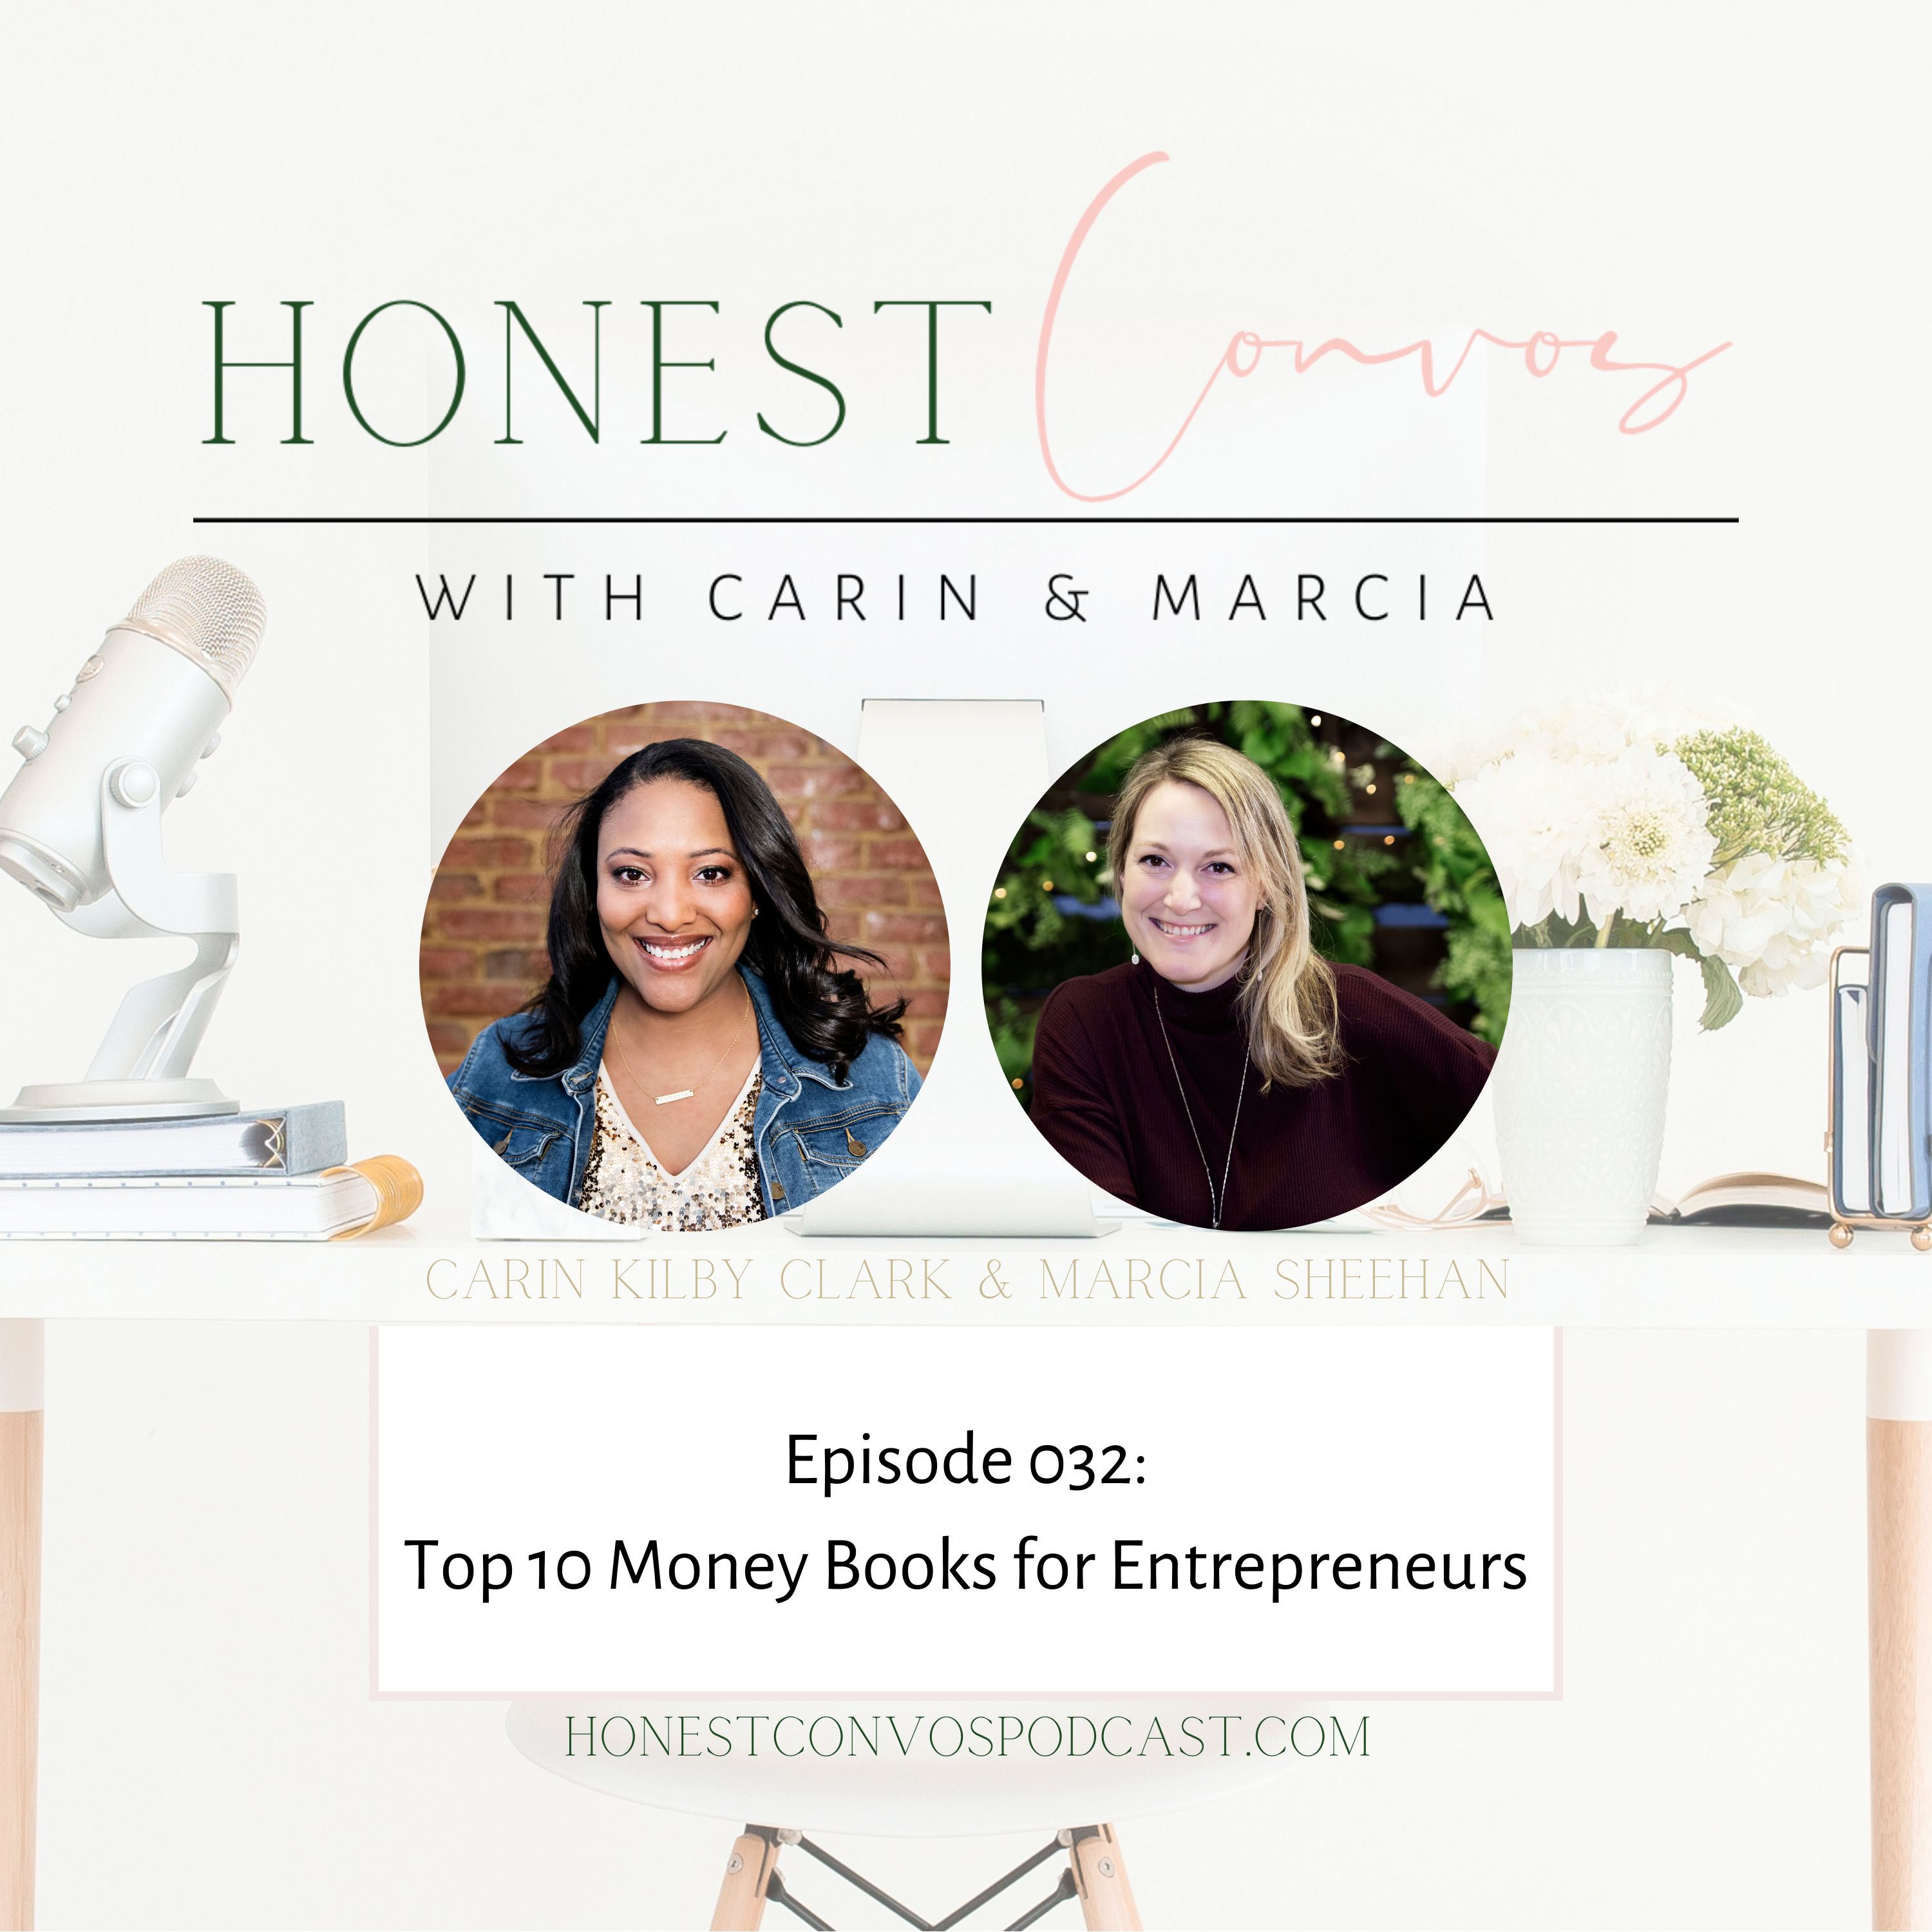 Honest Convos with Carin and Marcia - Top 10 Money Books for Entrepreneurs